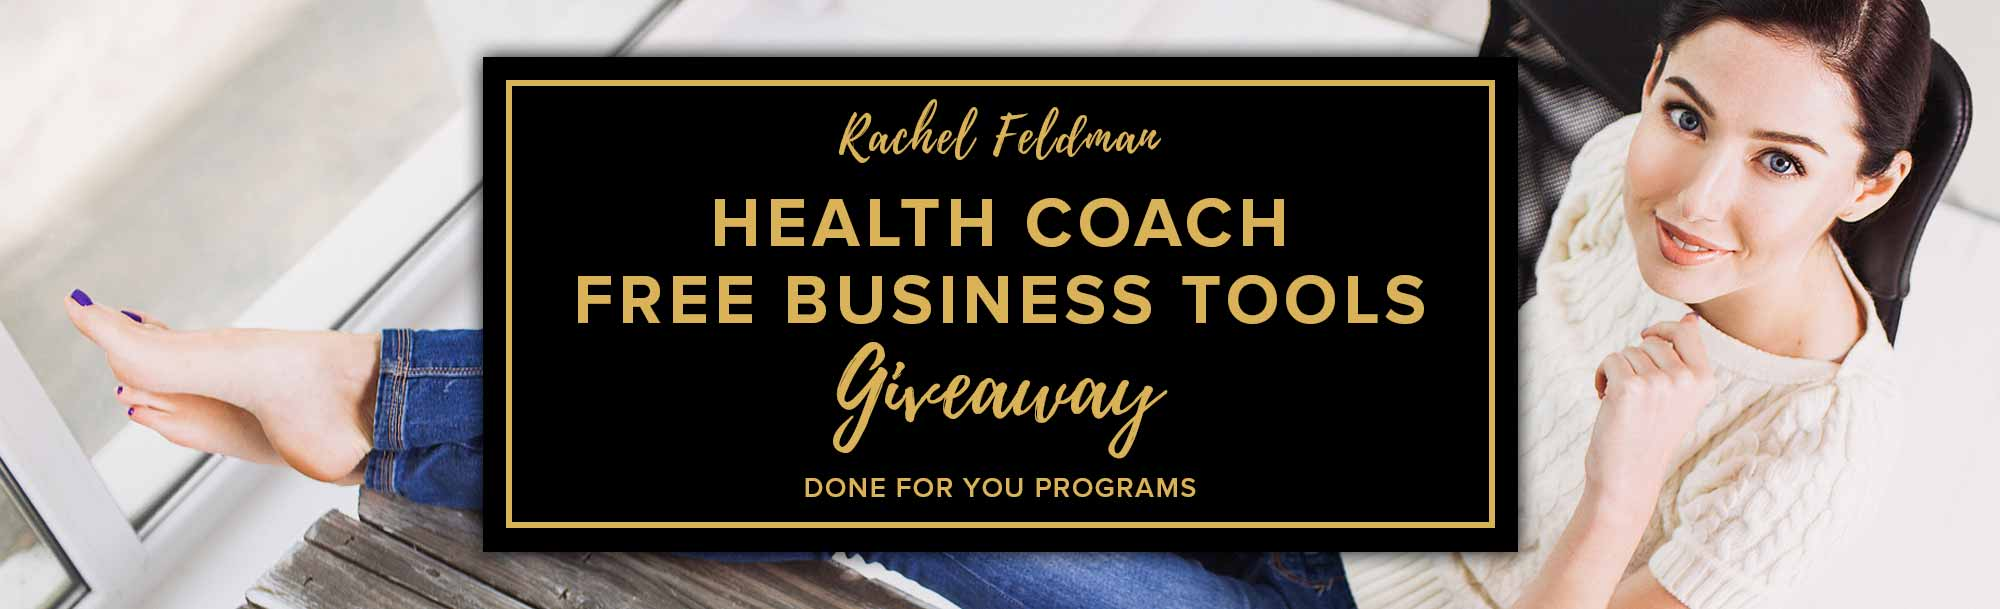 Health Coach Free Business Tools Giveaway